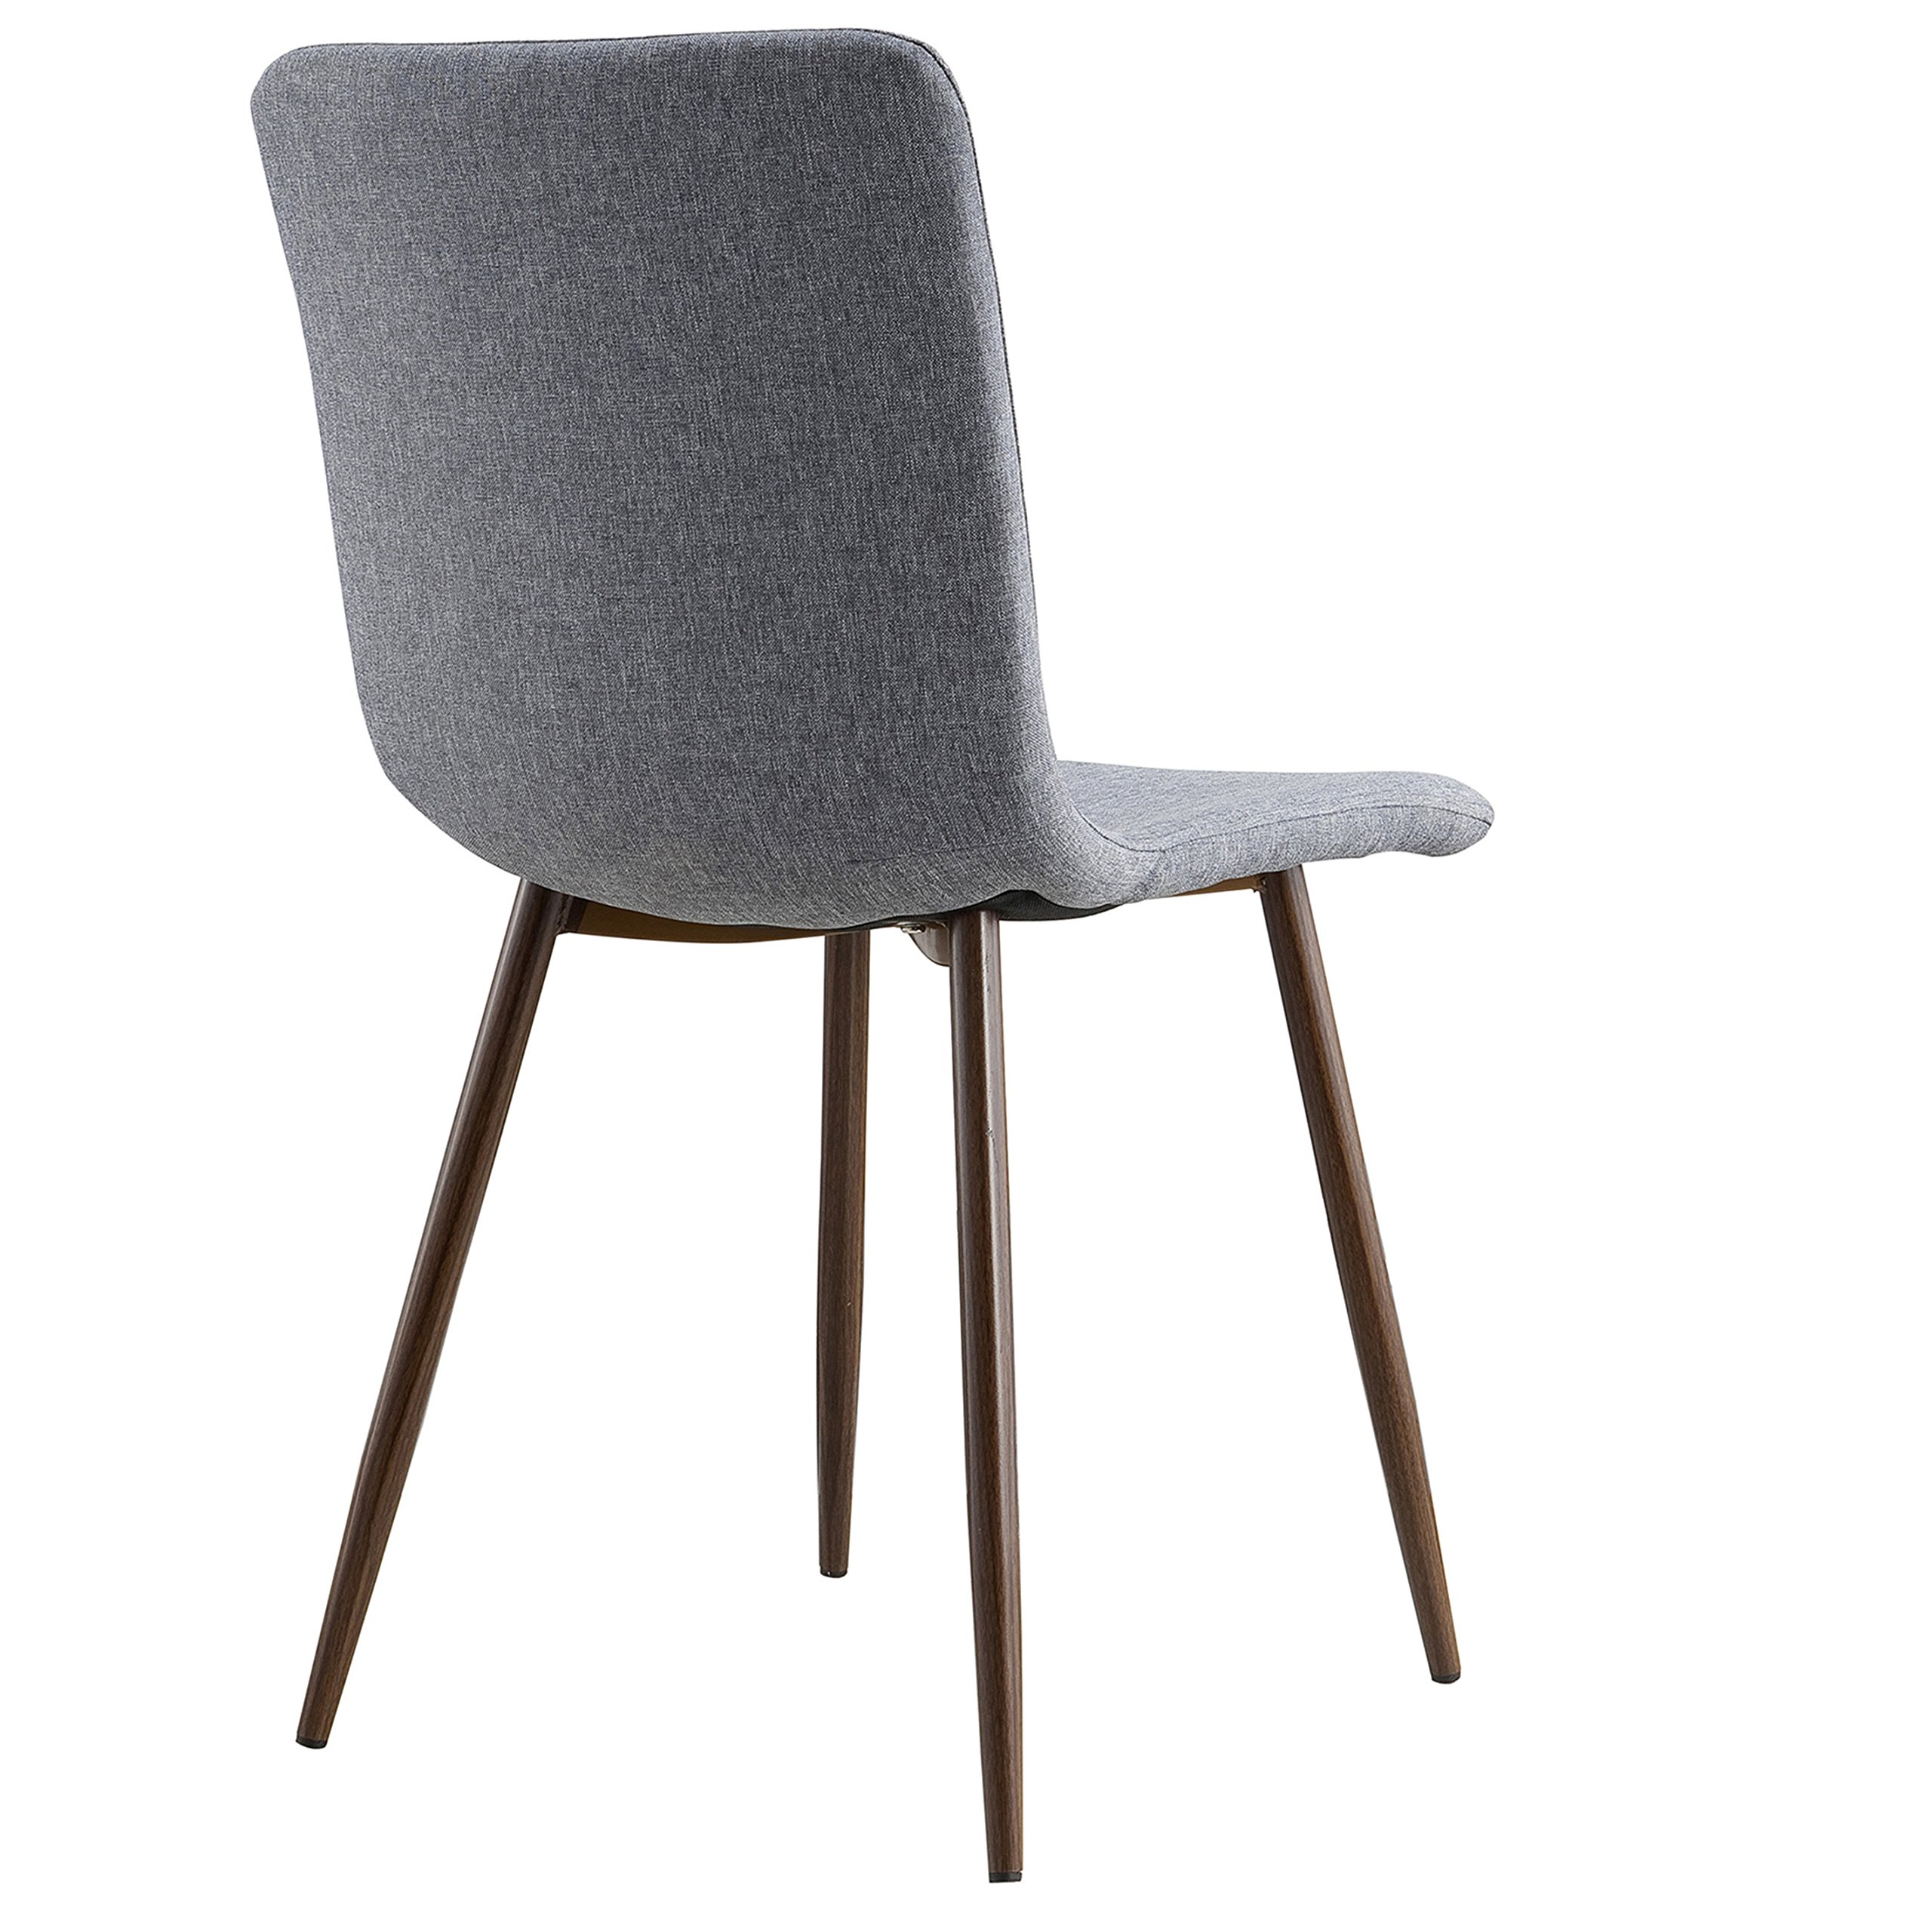 POLY & BARK EM-287-GRY-X4-A Wadsworth Dining Chair with Walnut Legs, Set of 4, by POLY & BARK (Image #5)